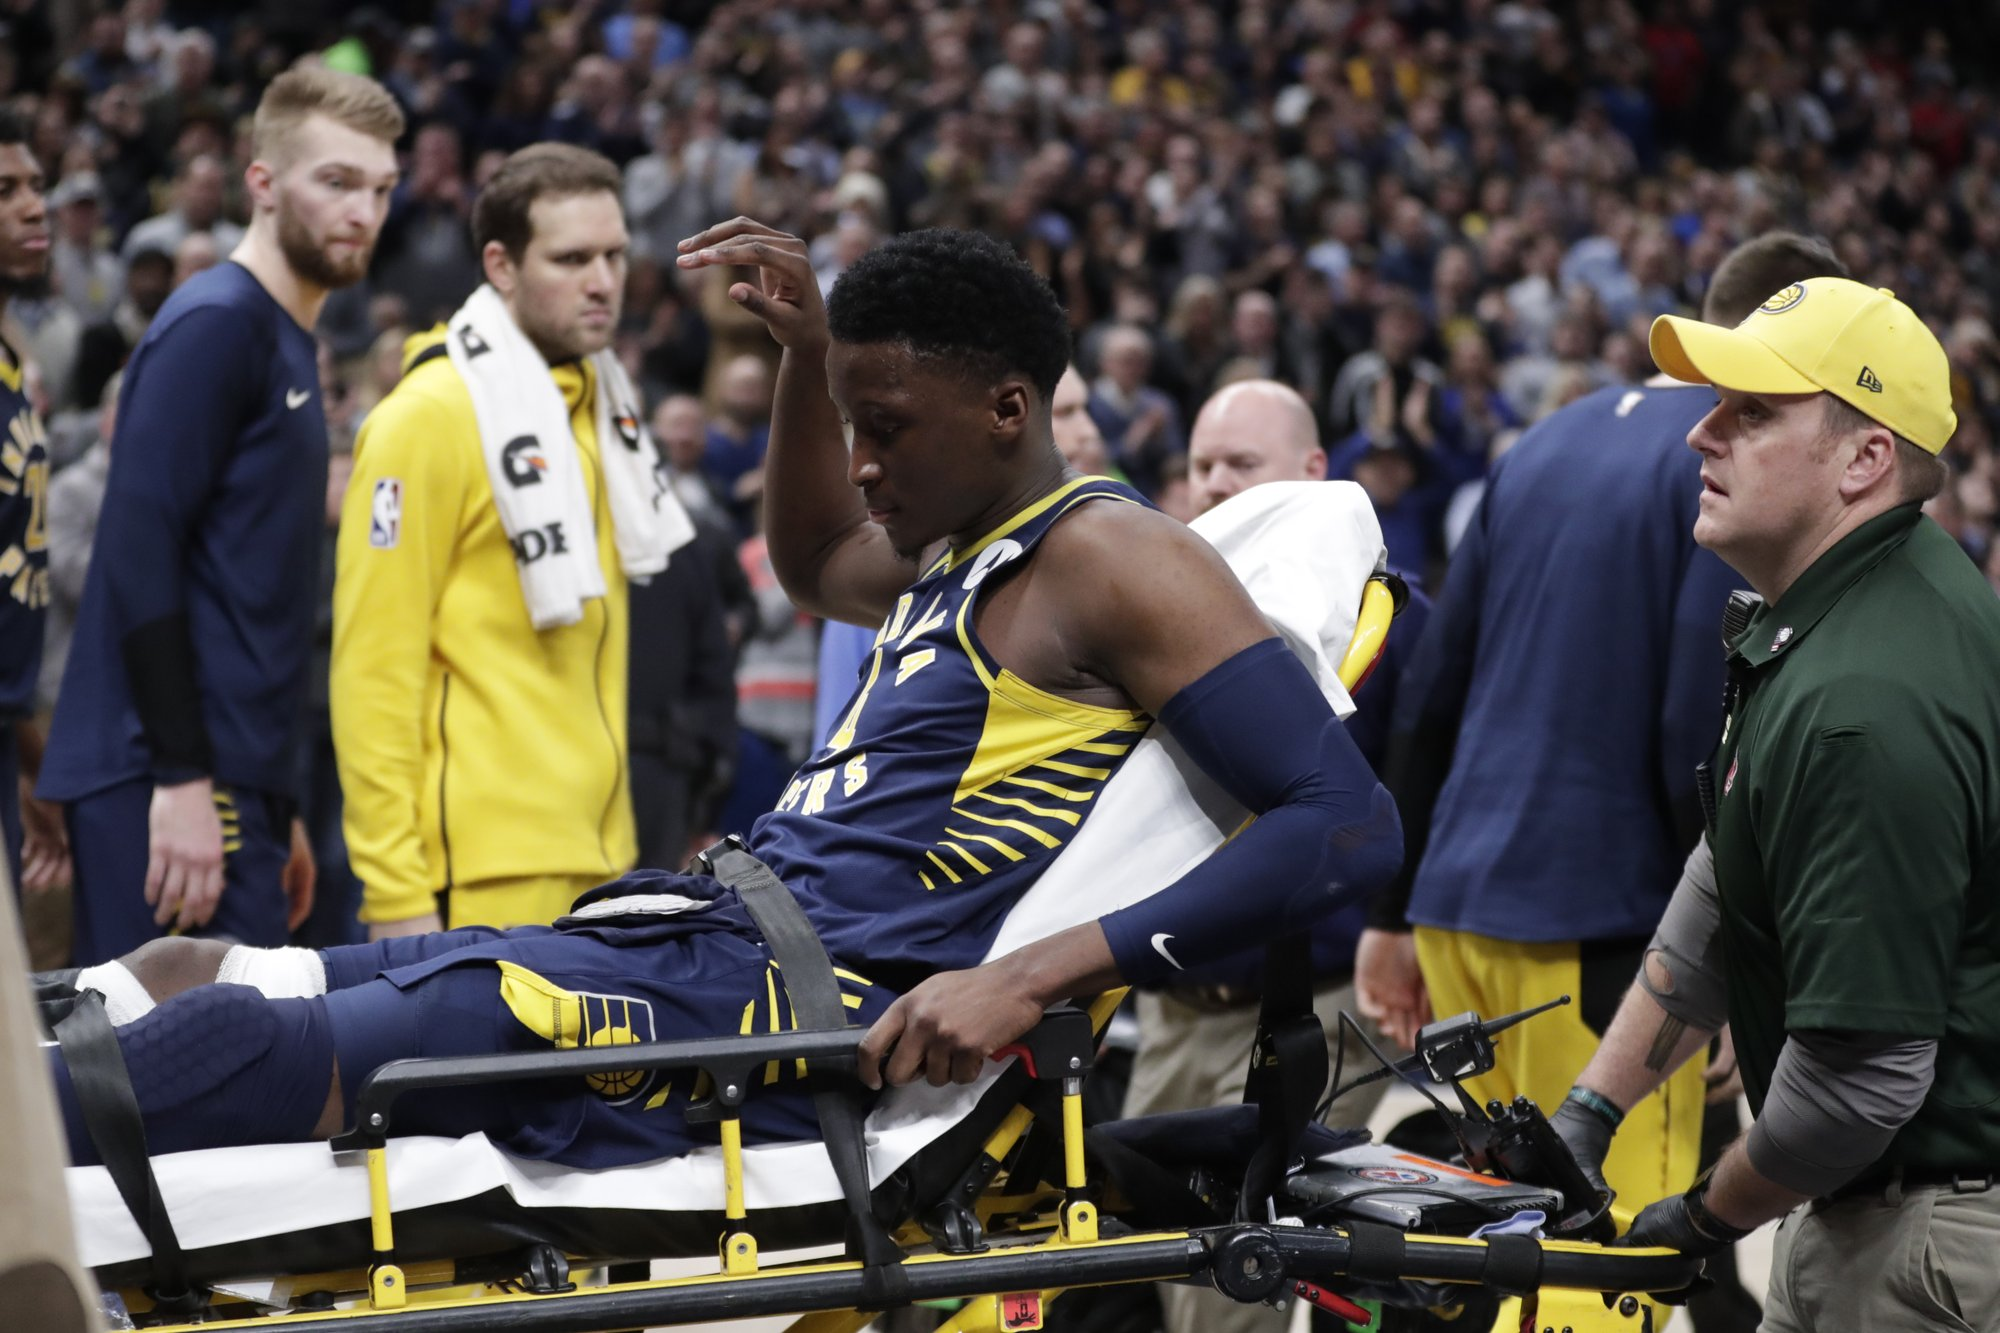 Pacers lose All-Star Victor Oladipo to season-ending injury